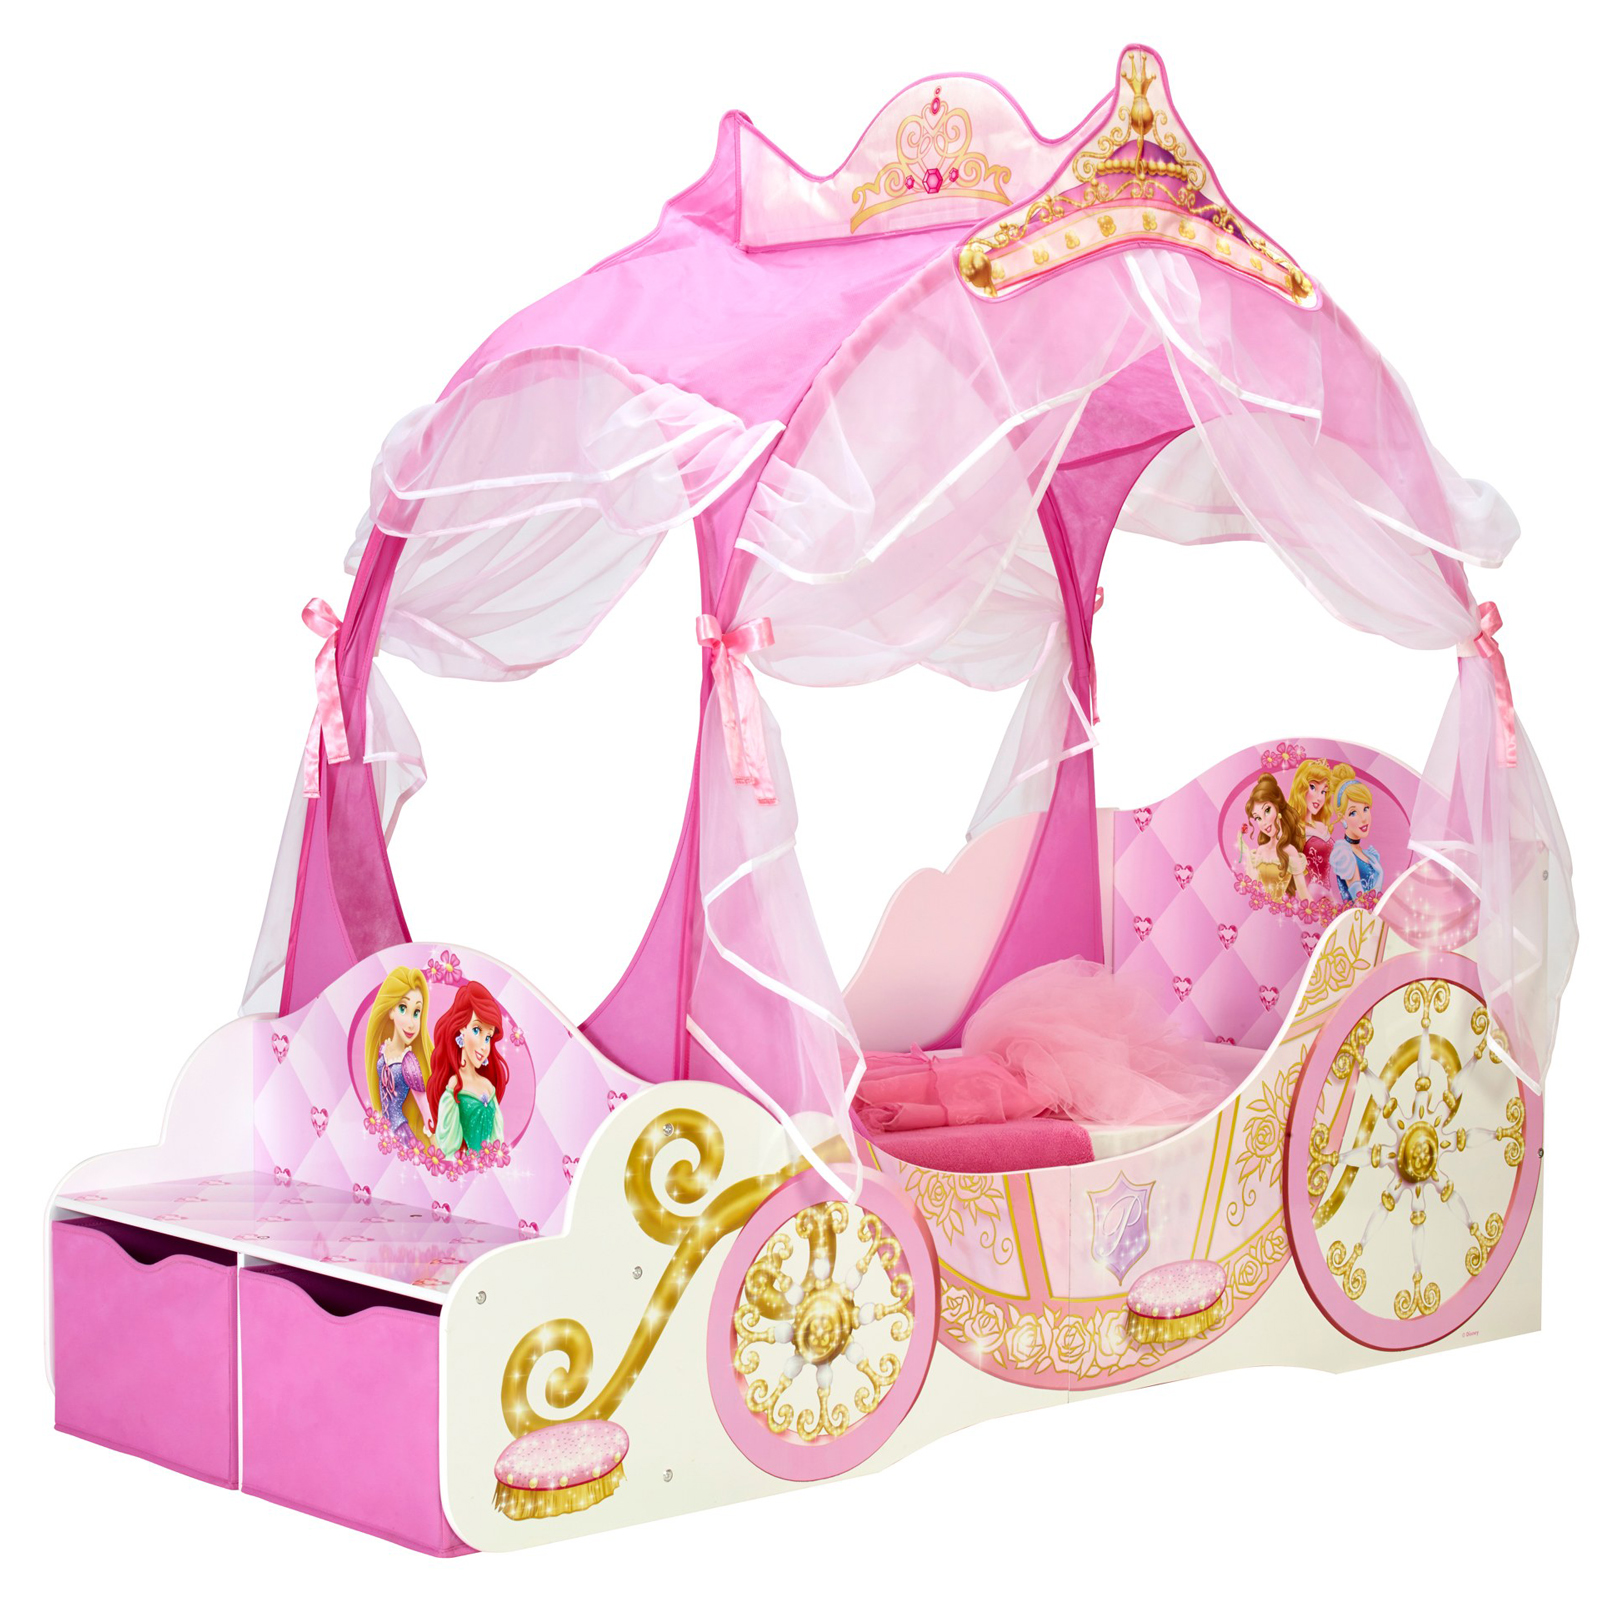 Disney Princess Bedroom Furniture Disney Princess Carriage Toddler Bed Yes Furniture Online